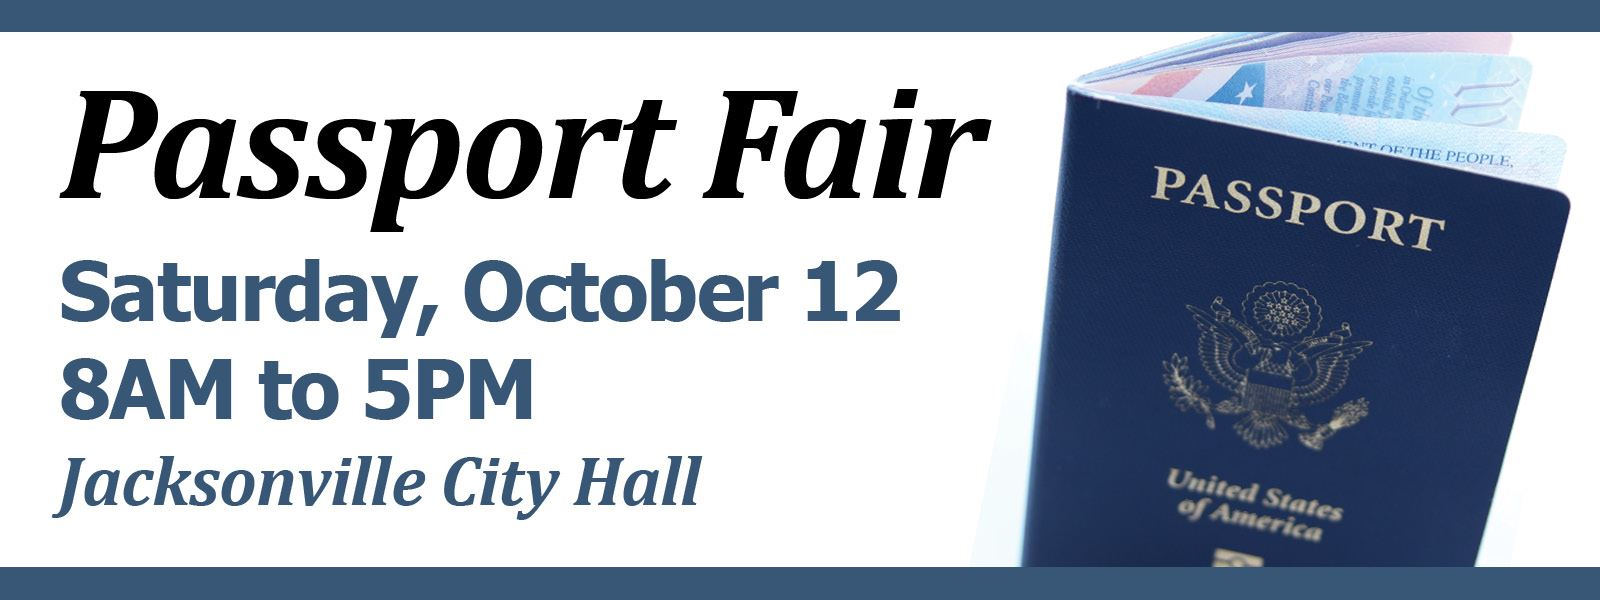 Passport Fair at City Hall, Saturday, October 12